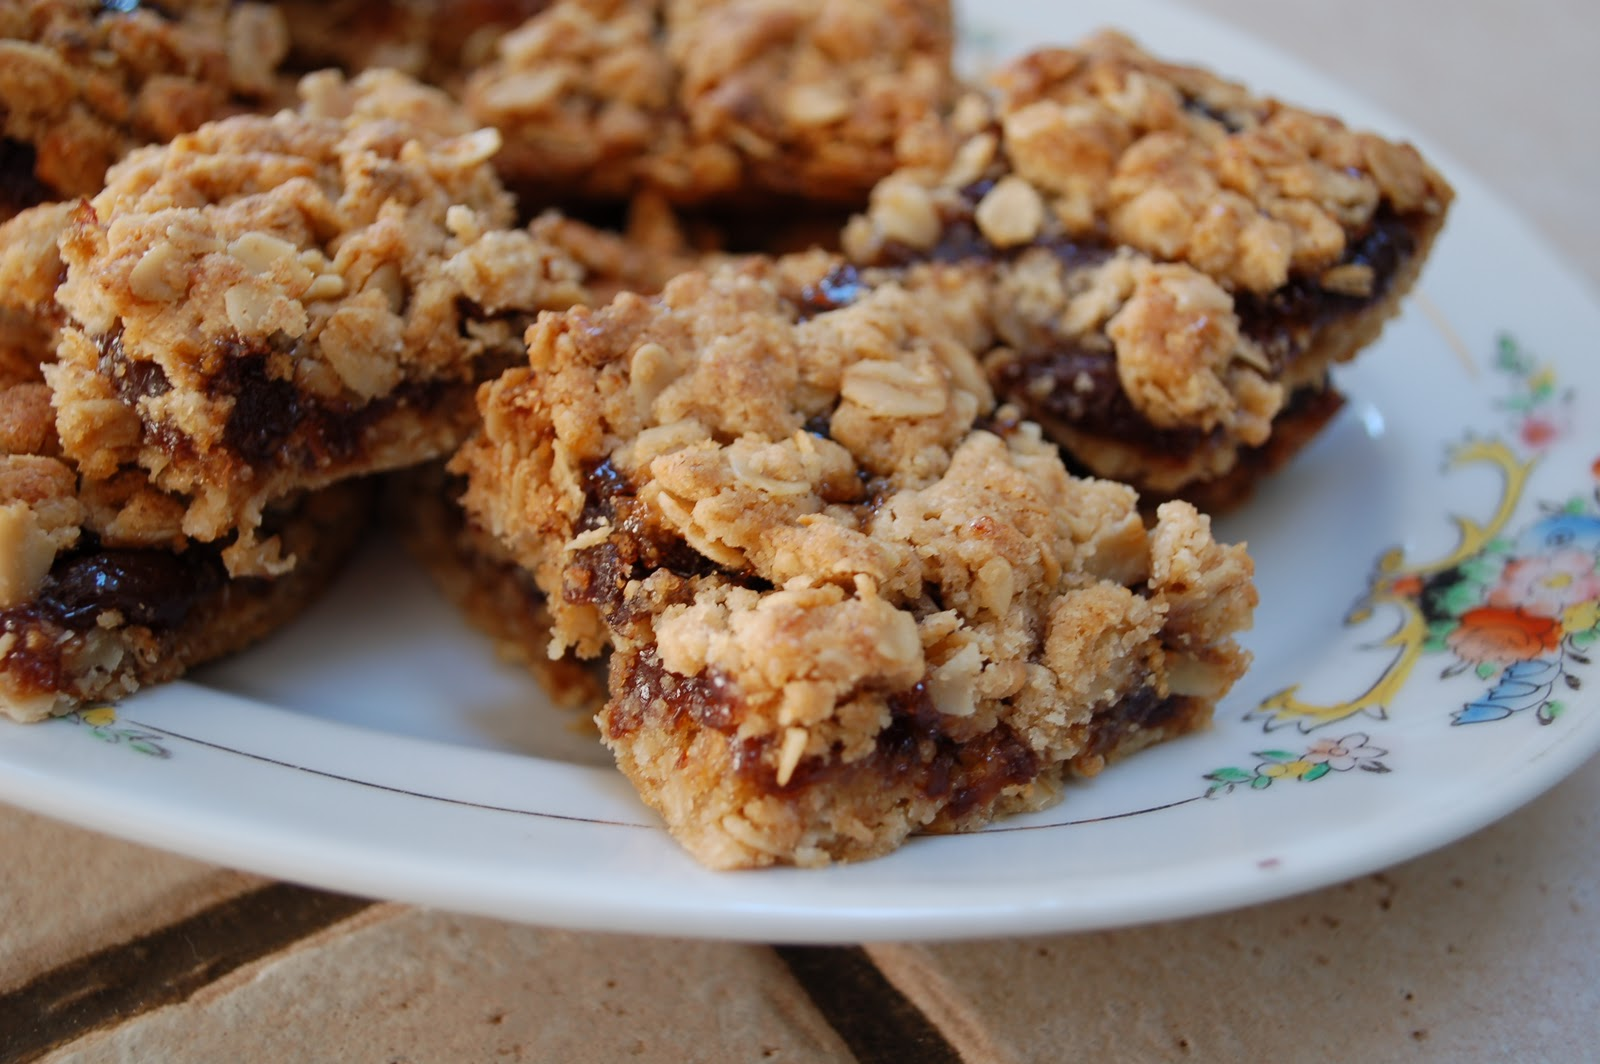 The Spice Garden: Apricot Cherry Oatmeal Bars - Gluten Free!